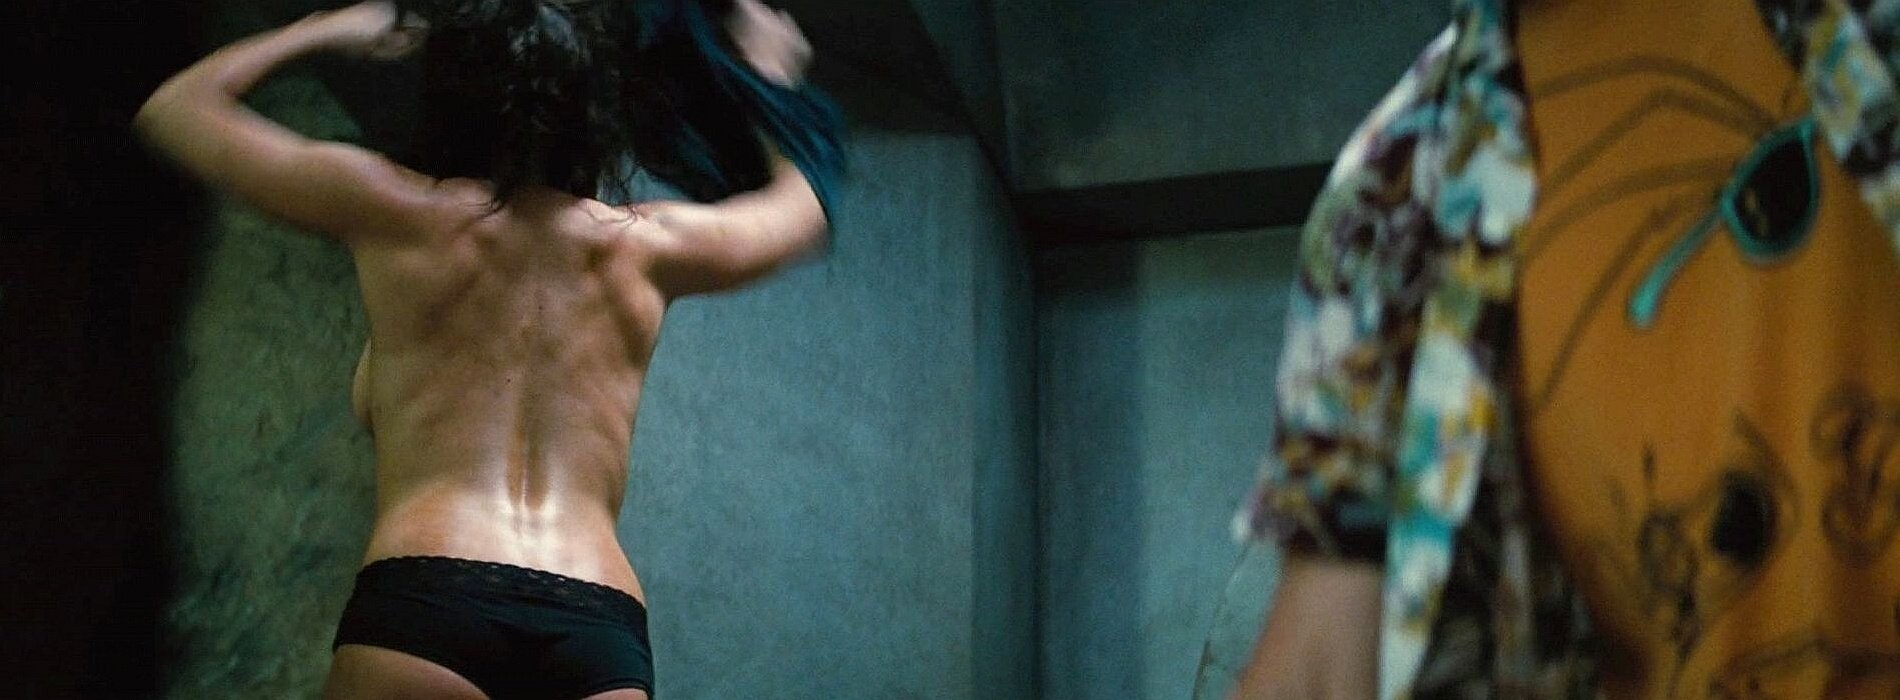 Rebecca Ferguson in Mission Impossible Rogue Nation 2015 fappenings.com 10